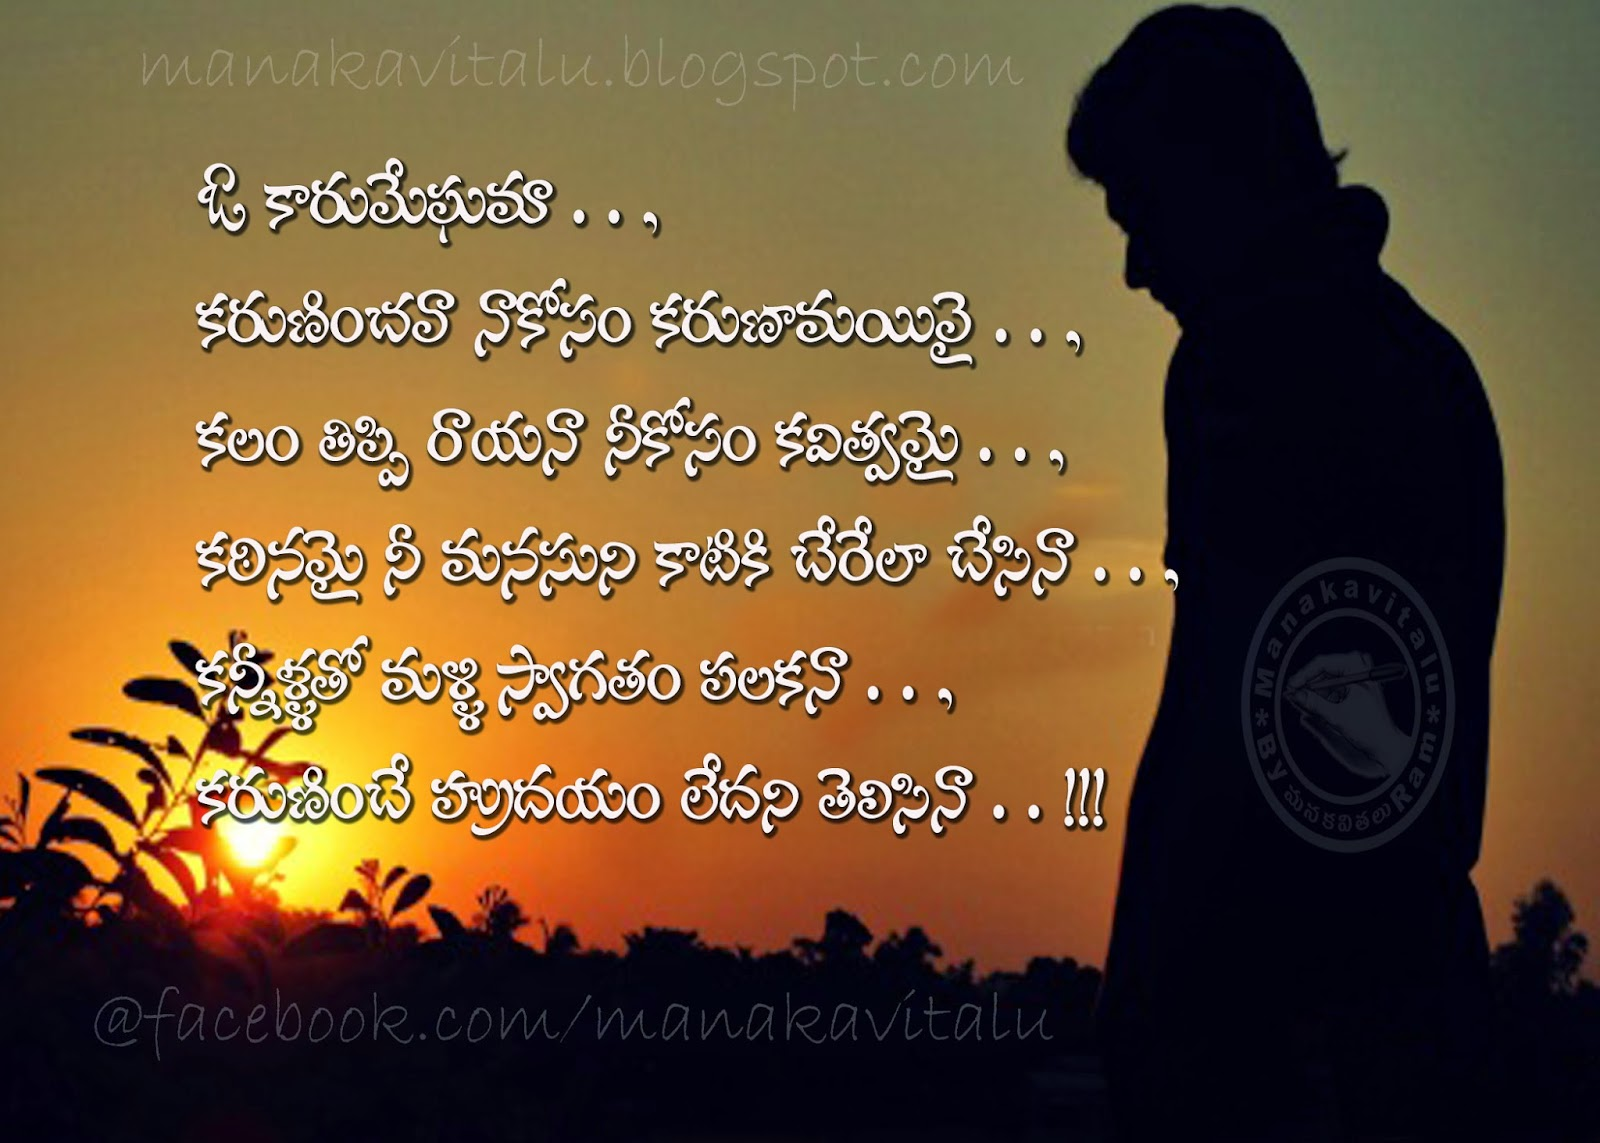 o karu meghama telugu love kavitalu on images